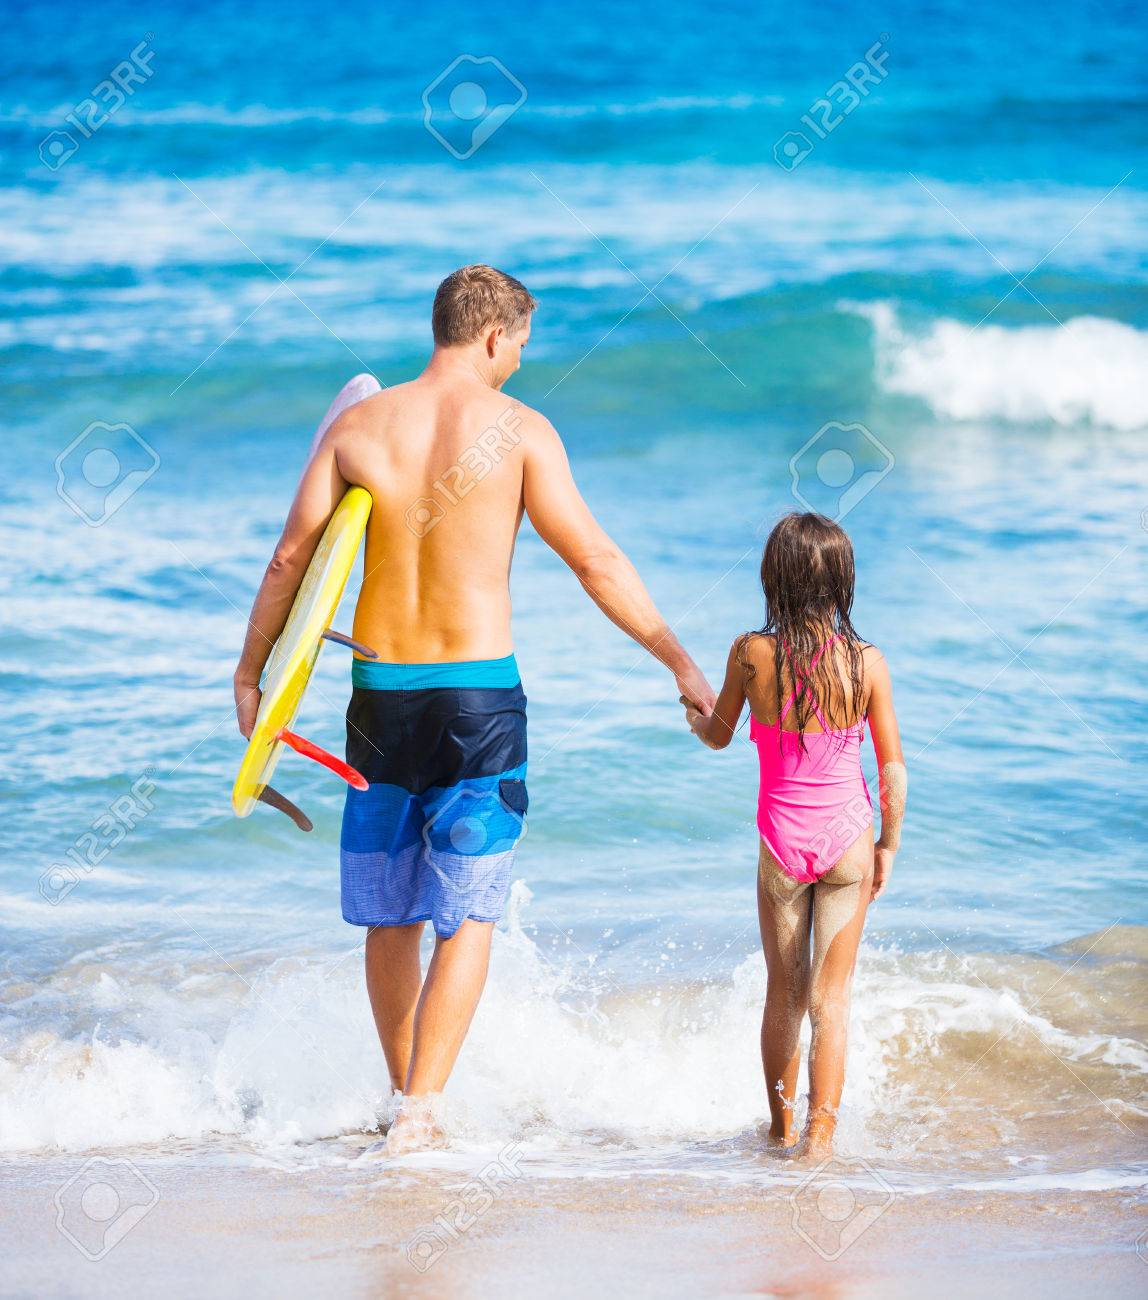 Father And Daughter On The Beach Going Surfing Together In Hawaii Summer Lifestyle Family Concept